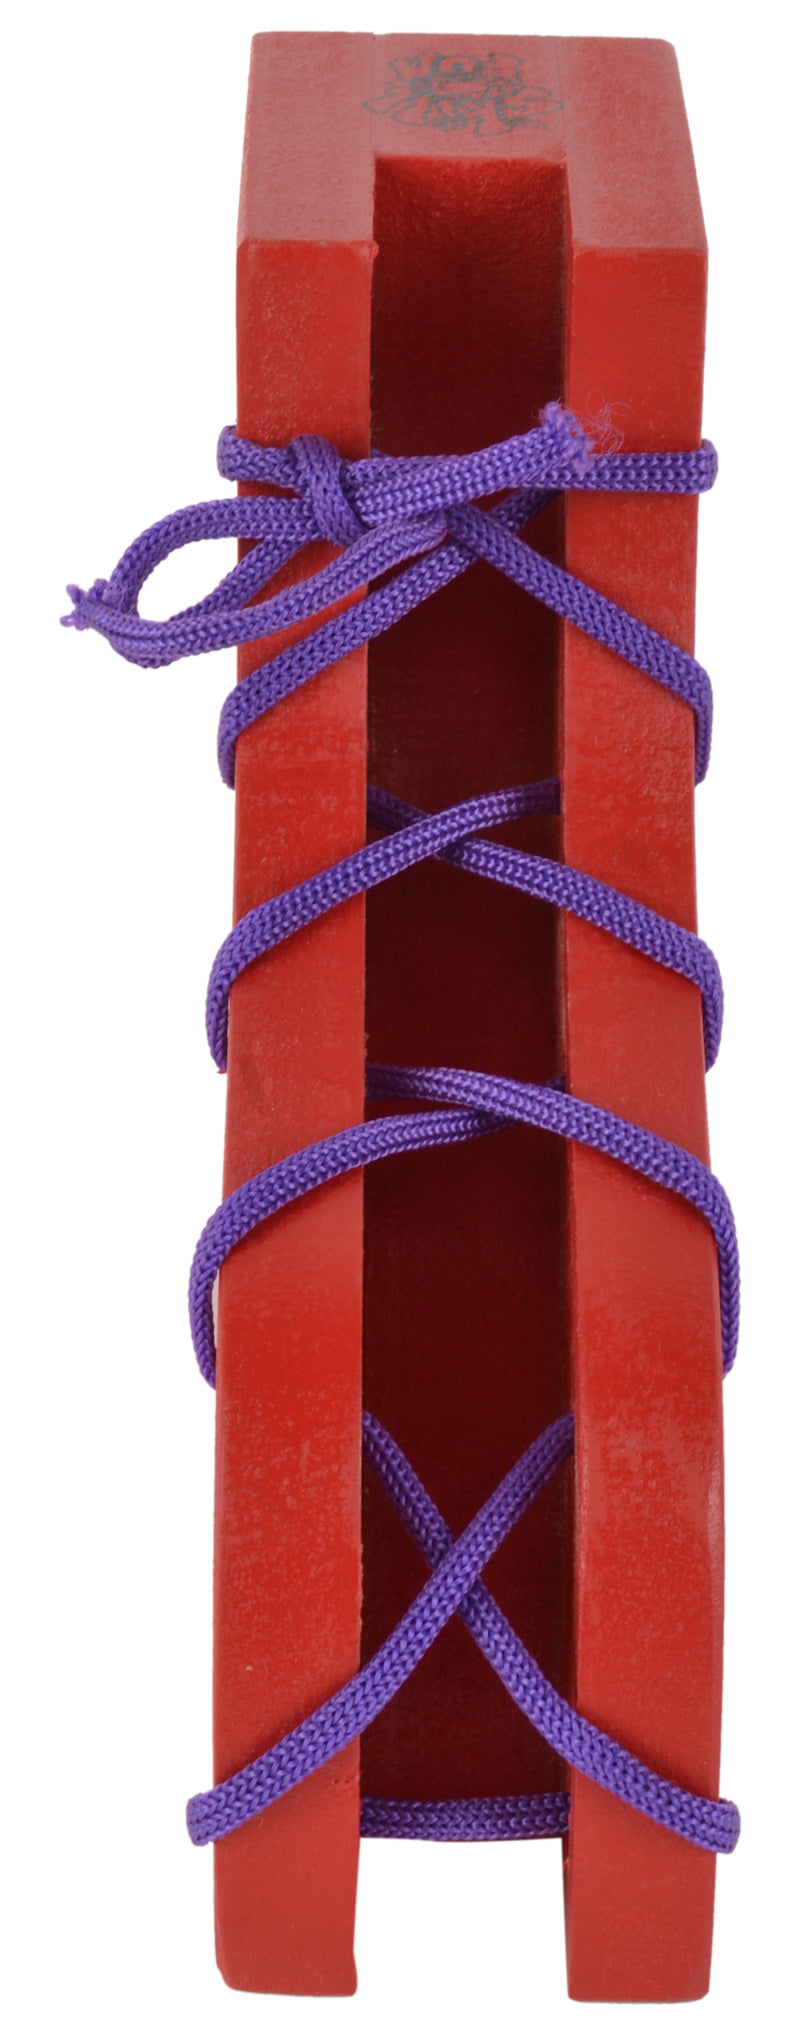 Solid Lacing Shoe-Toys-THE MUM SHOP